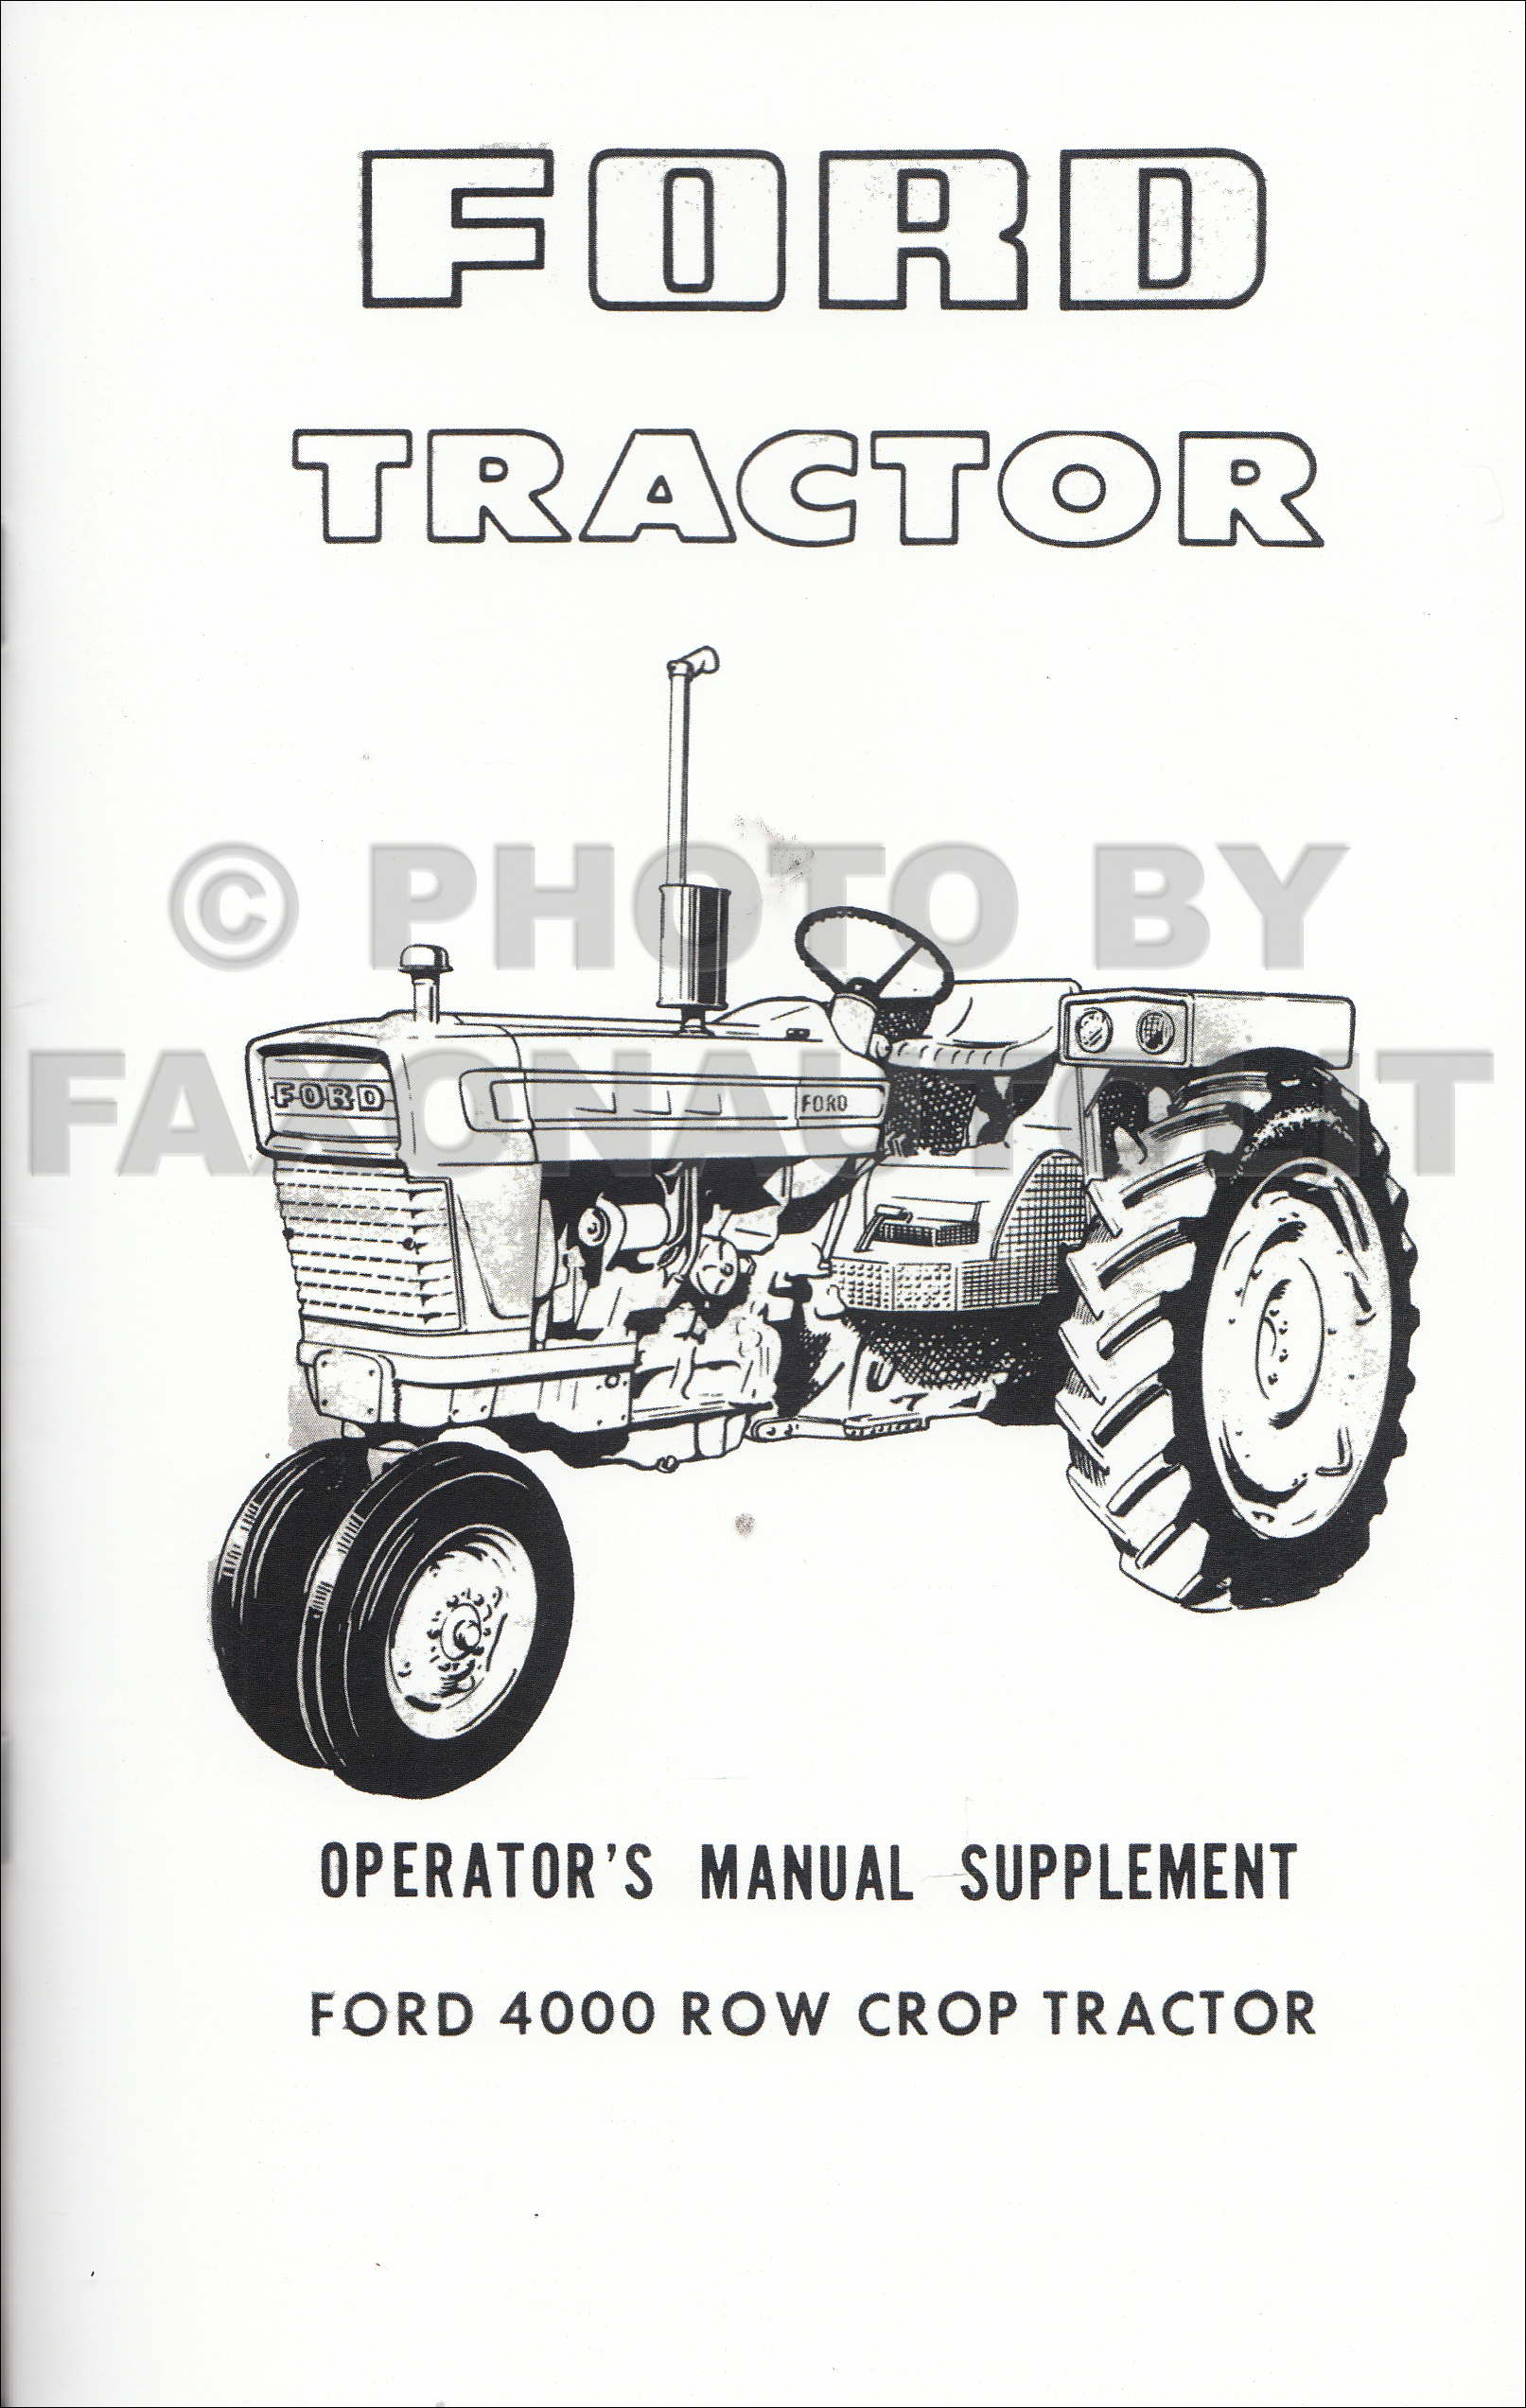 1965-1975 Ford 4000 Row Crop Tractor Owner's Manual Supplement Reprint